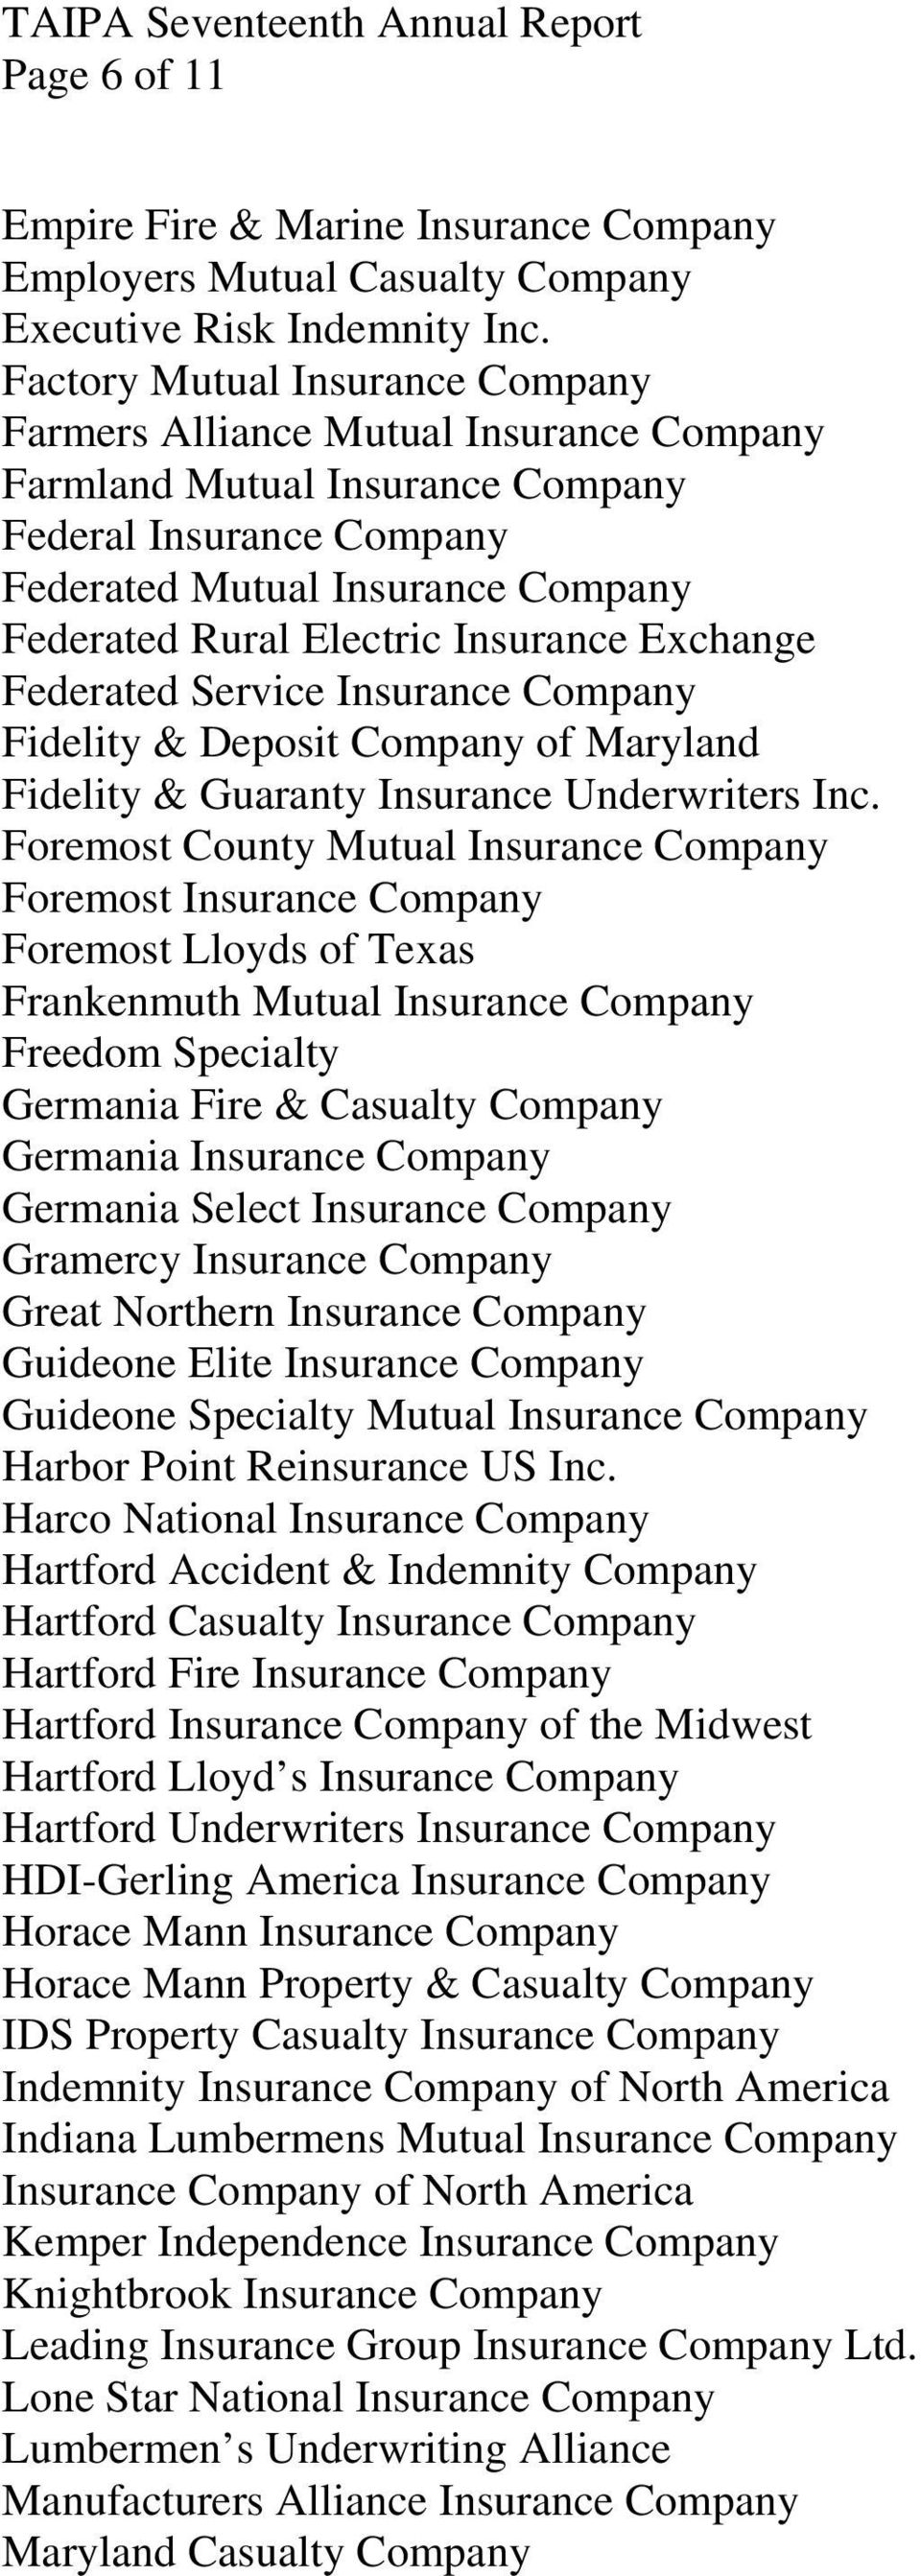 Insurance Exchange Federated Service Insurance Company Fidelity & Deposit Company of Maryland Fidelity & Guaranty Insurance Underwriters Inc.